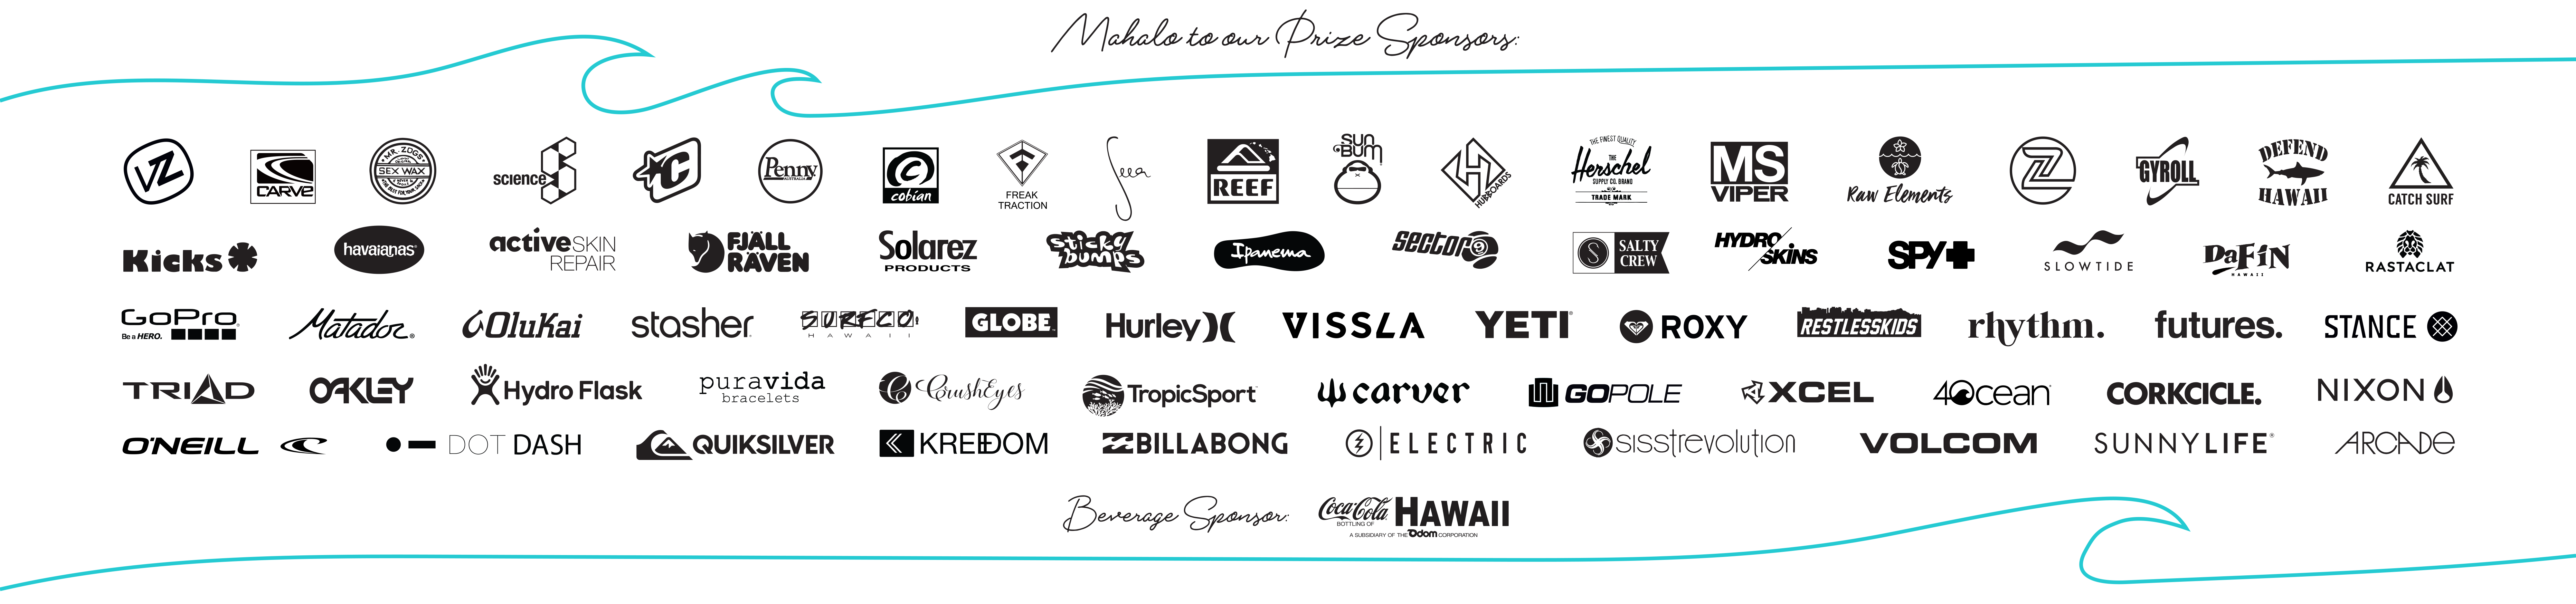 product sponsors image